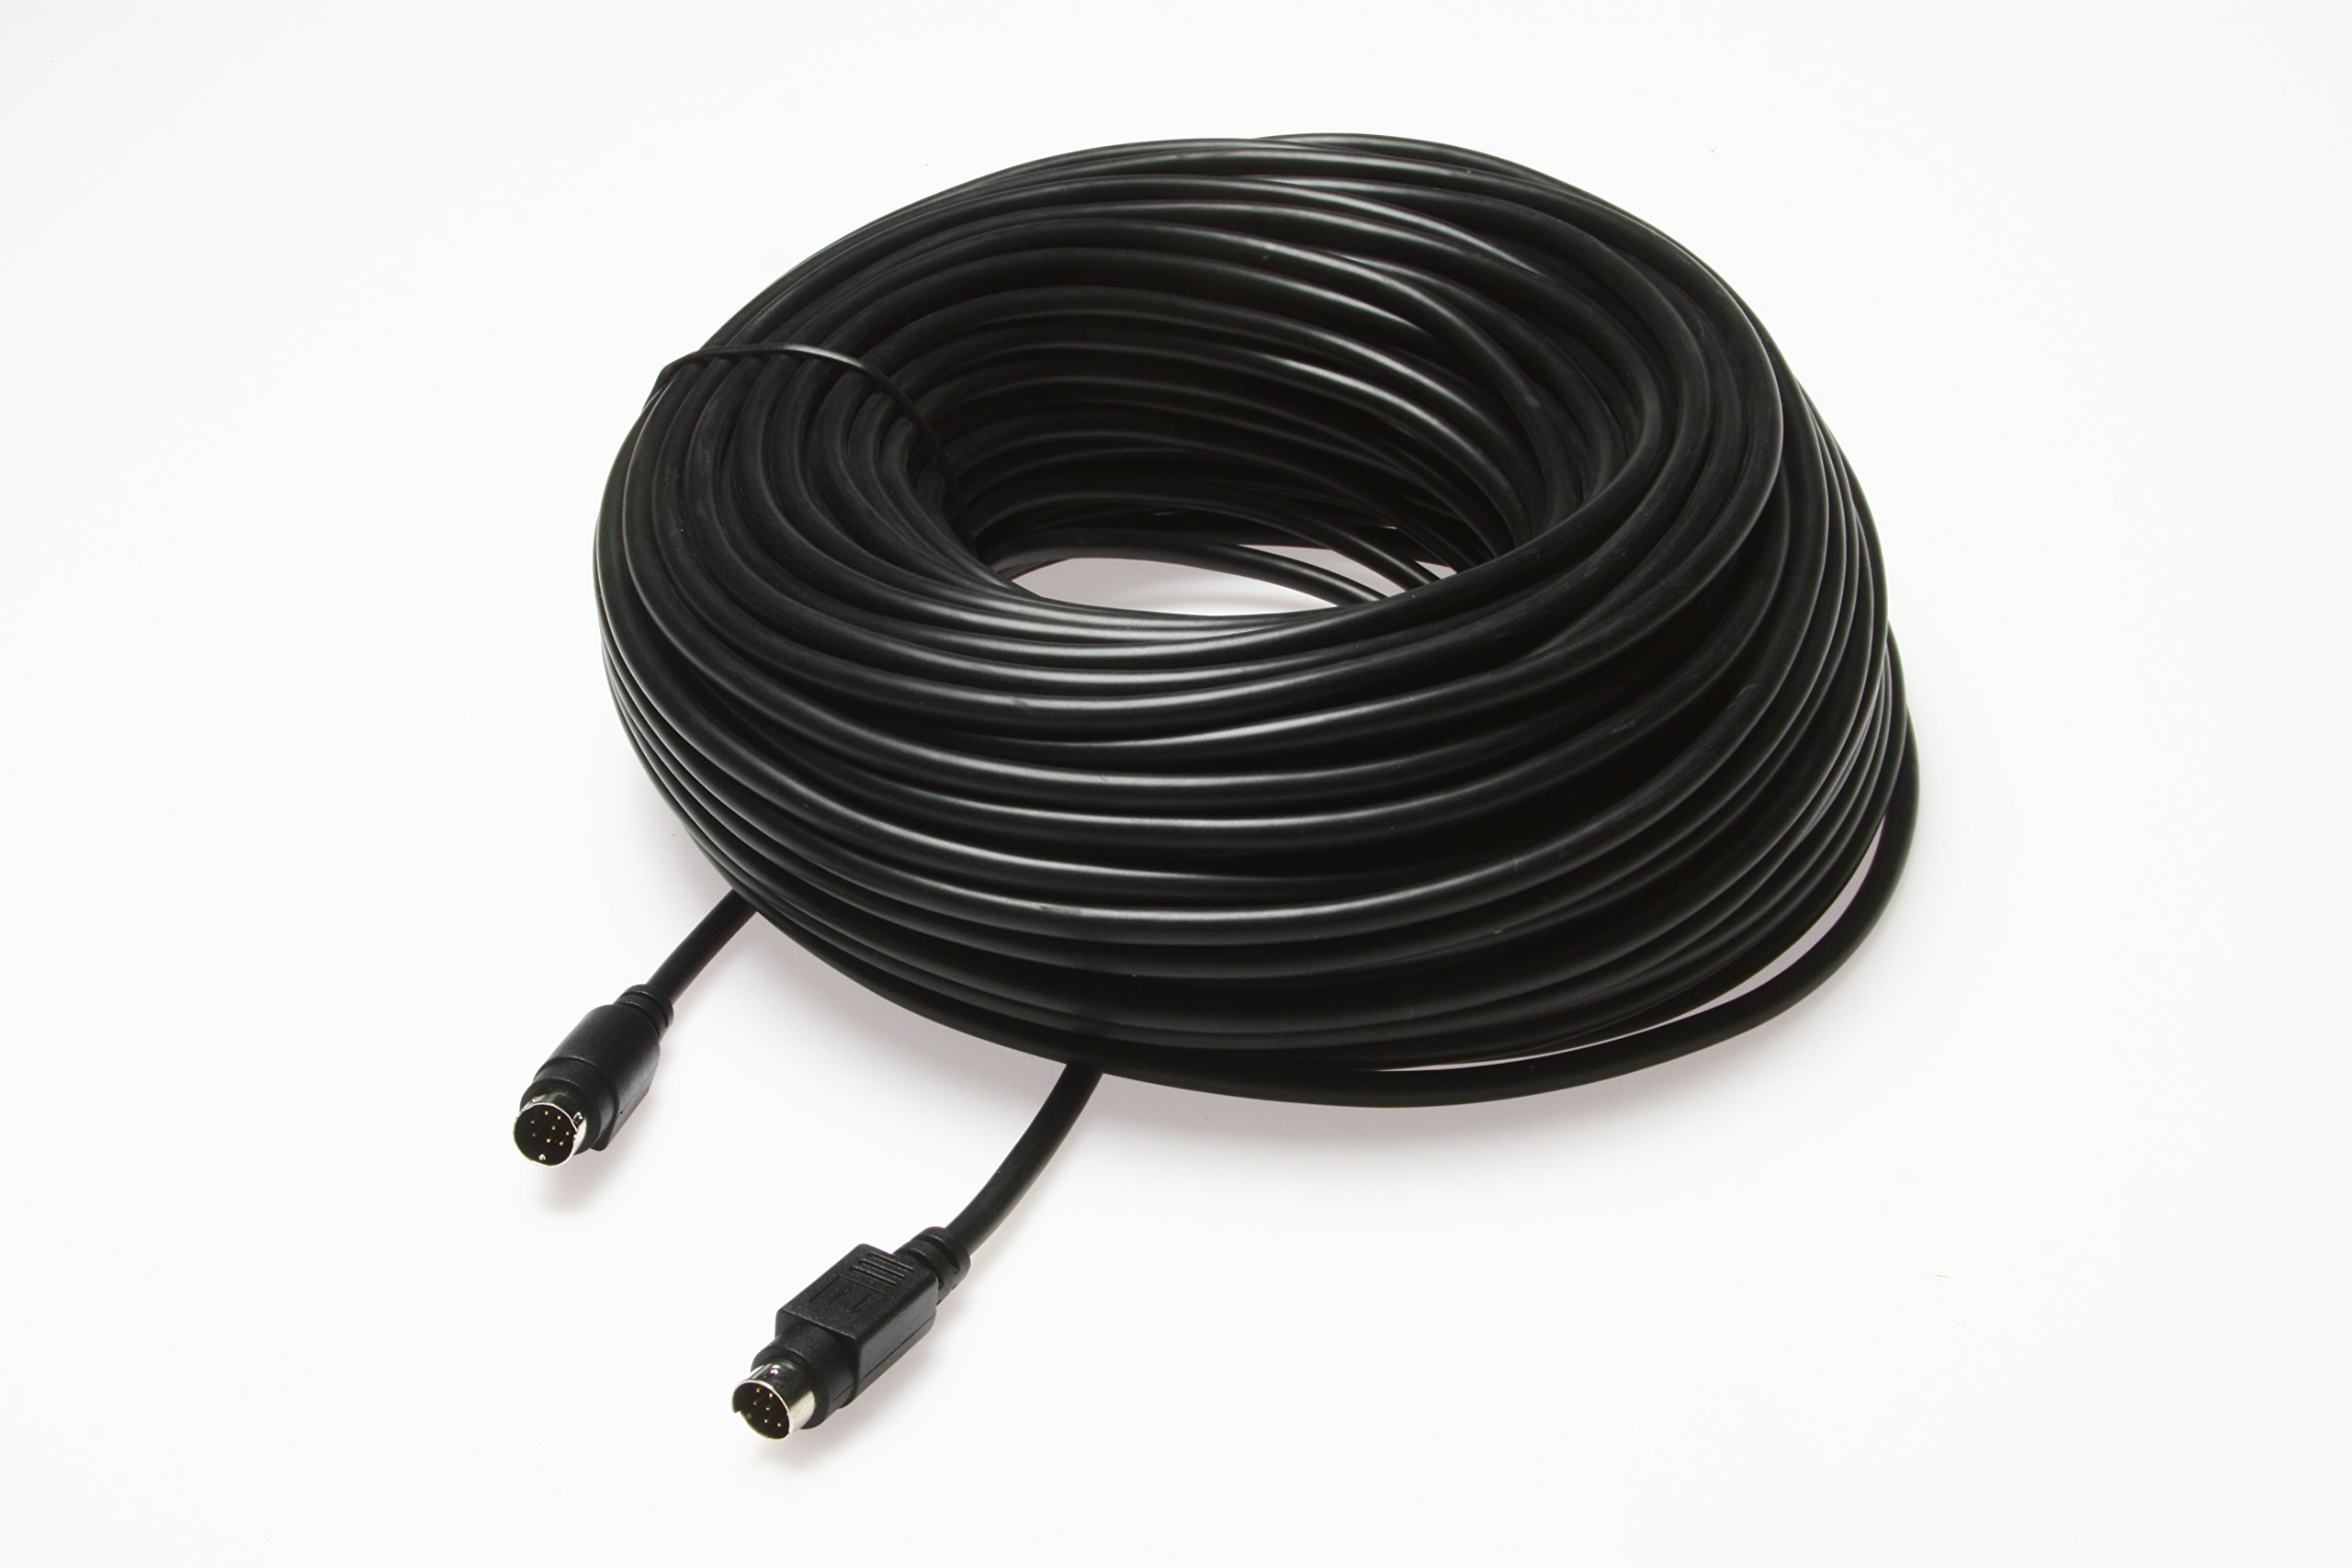 50ft VISCA PTZ Daisy Chain Camera Control Cable Sony EVI/BRC/SRG Series RS232 8 Pin Mini DIN to 8 Pin Mini DIN Serial by Wirenest